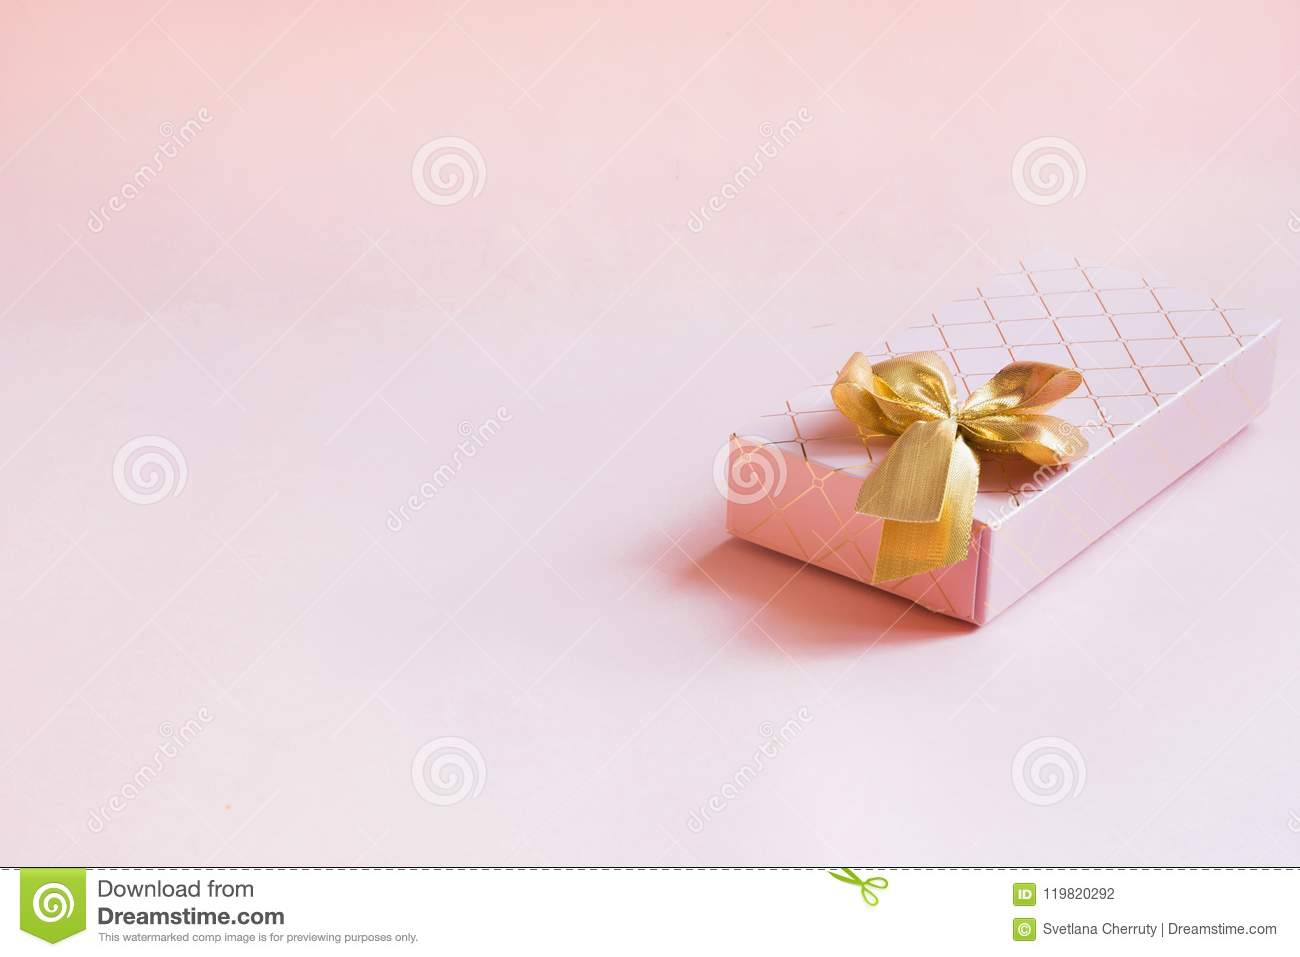 Female gift box with golden ribbon on punchy pastel pink. Birthday. Copy space.